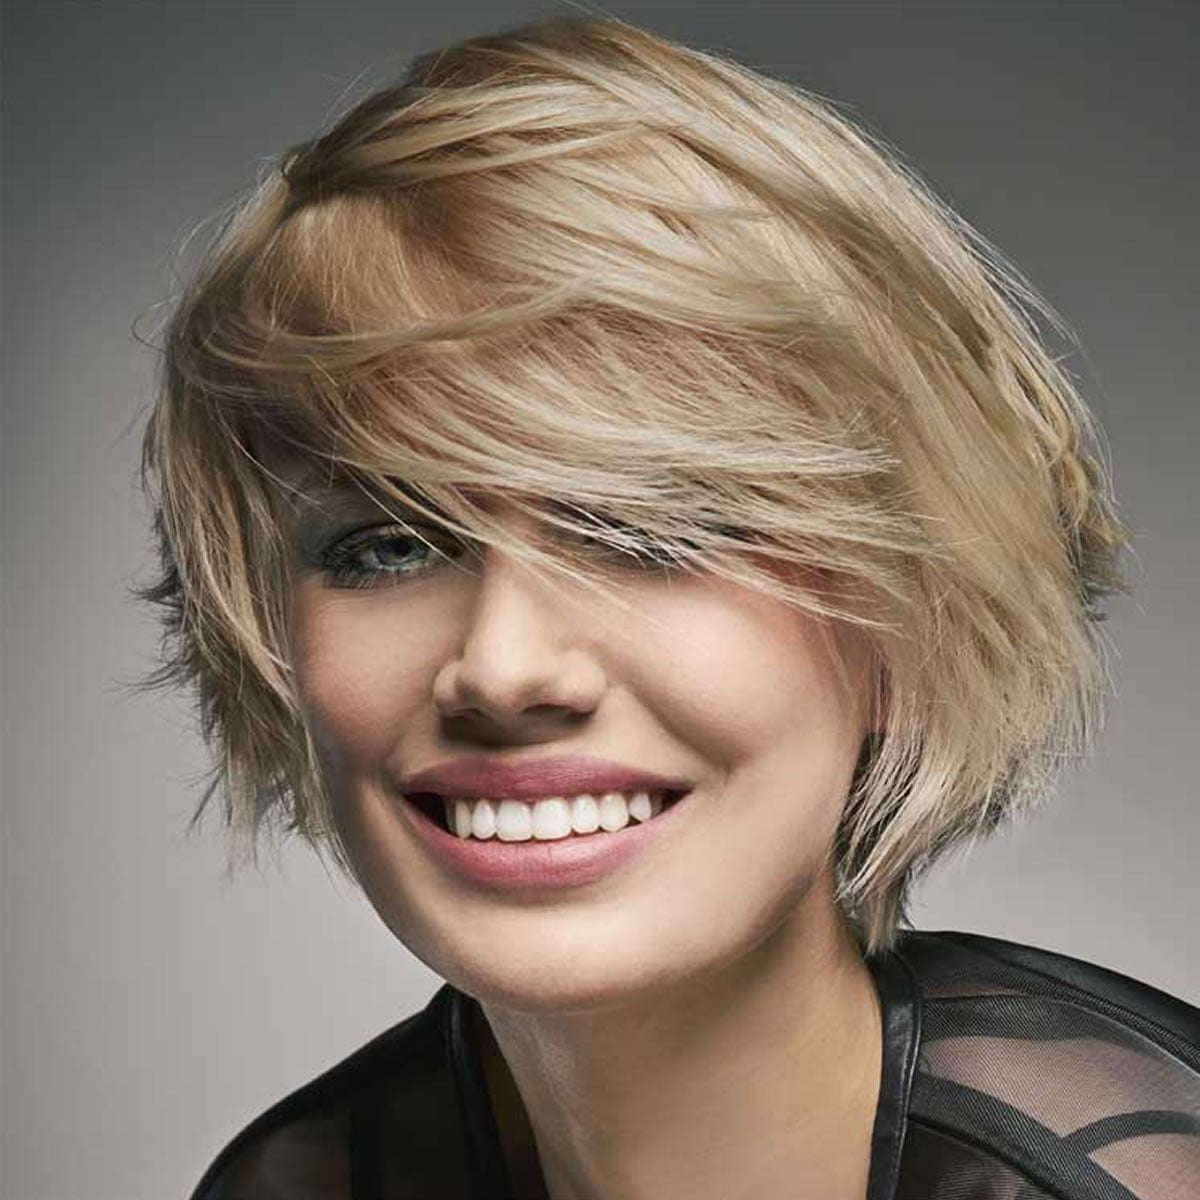 The Best 30 Short Bob Haircuts – 2018 Short Hairstyles for ...